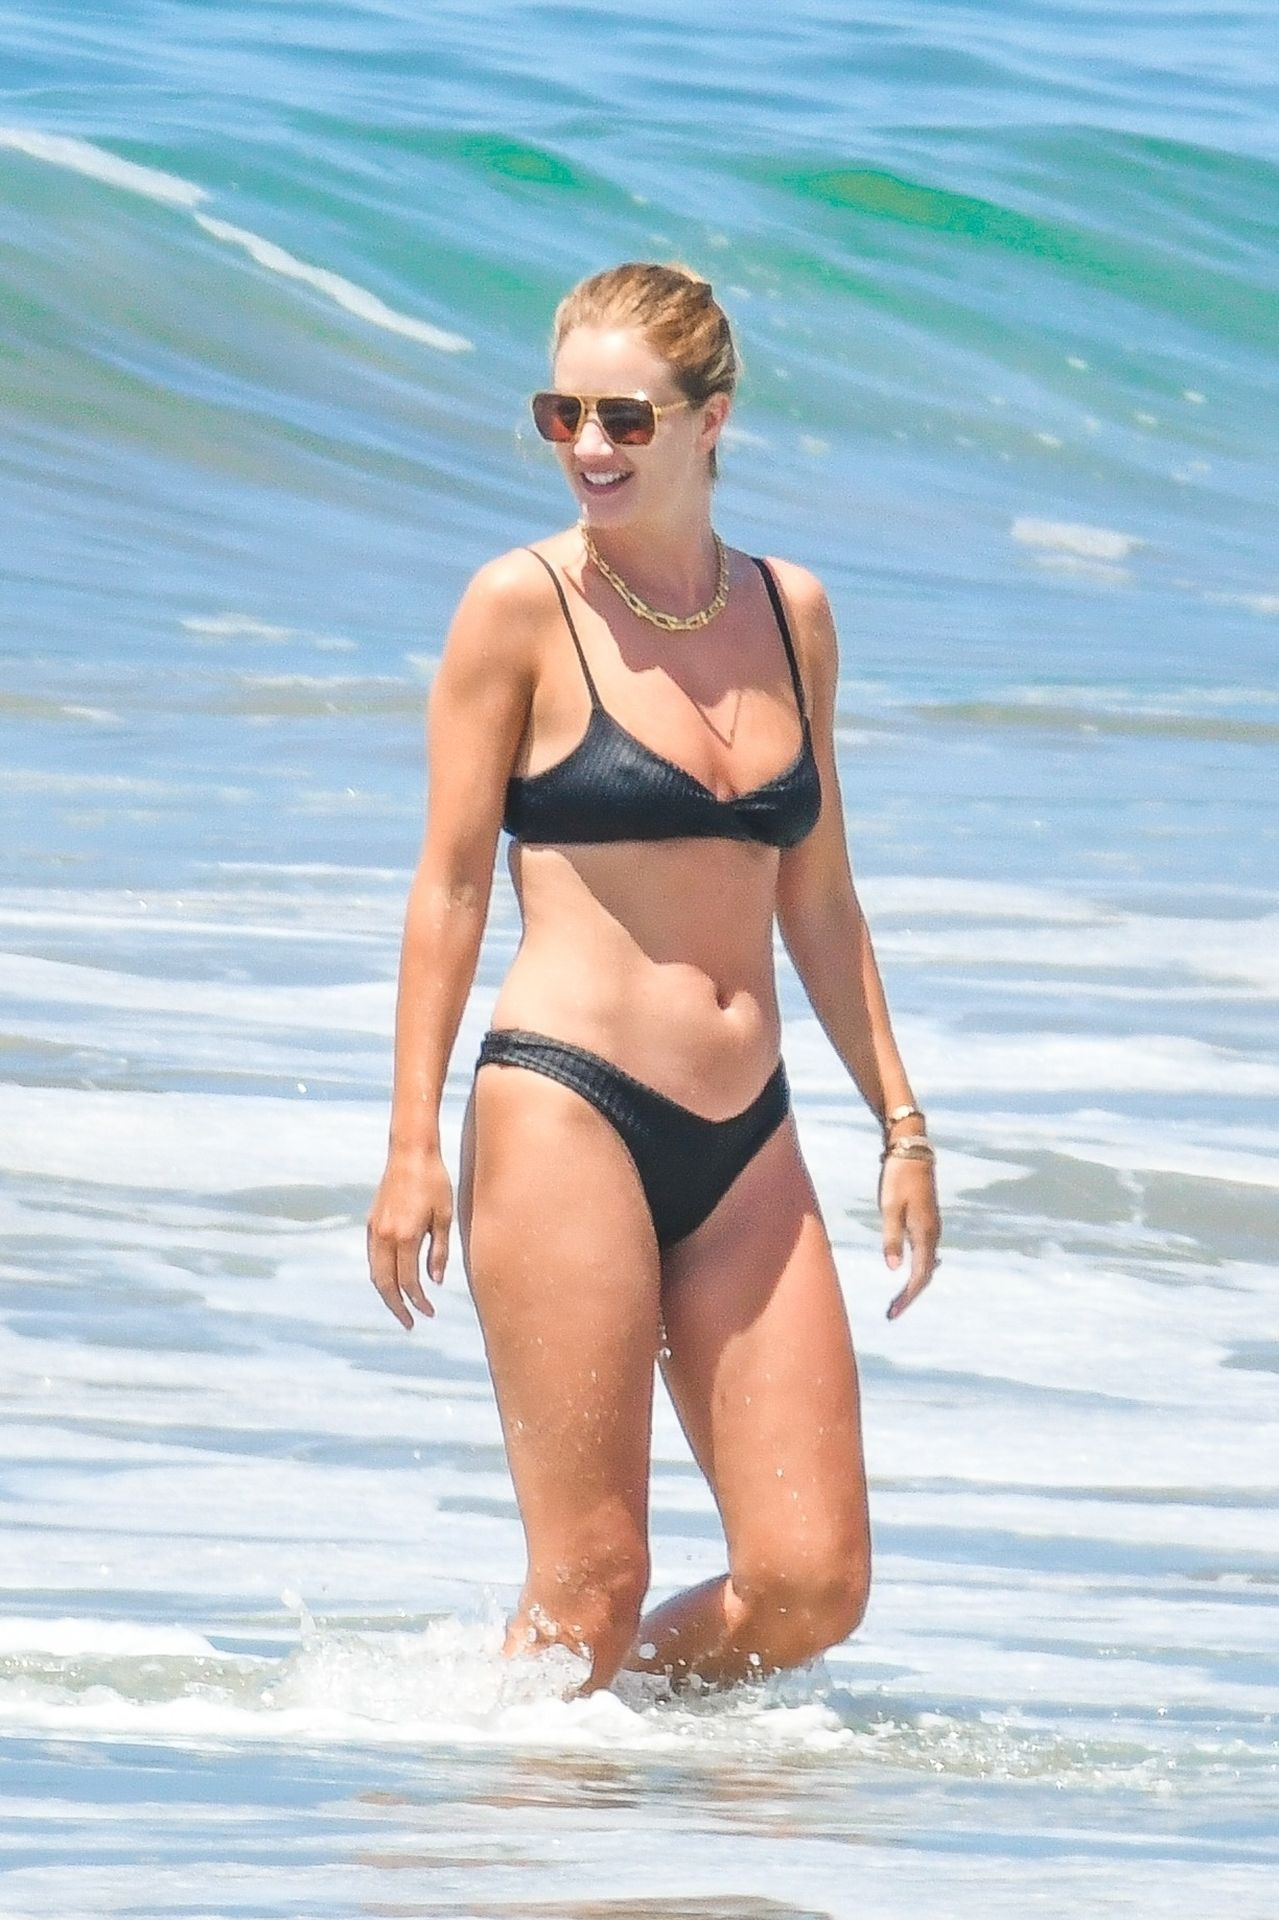 Rosie Huntington-Whiteley Bikini Nipple Pokies! (NSFW)